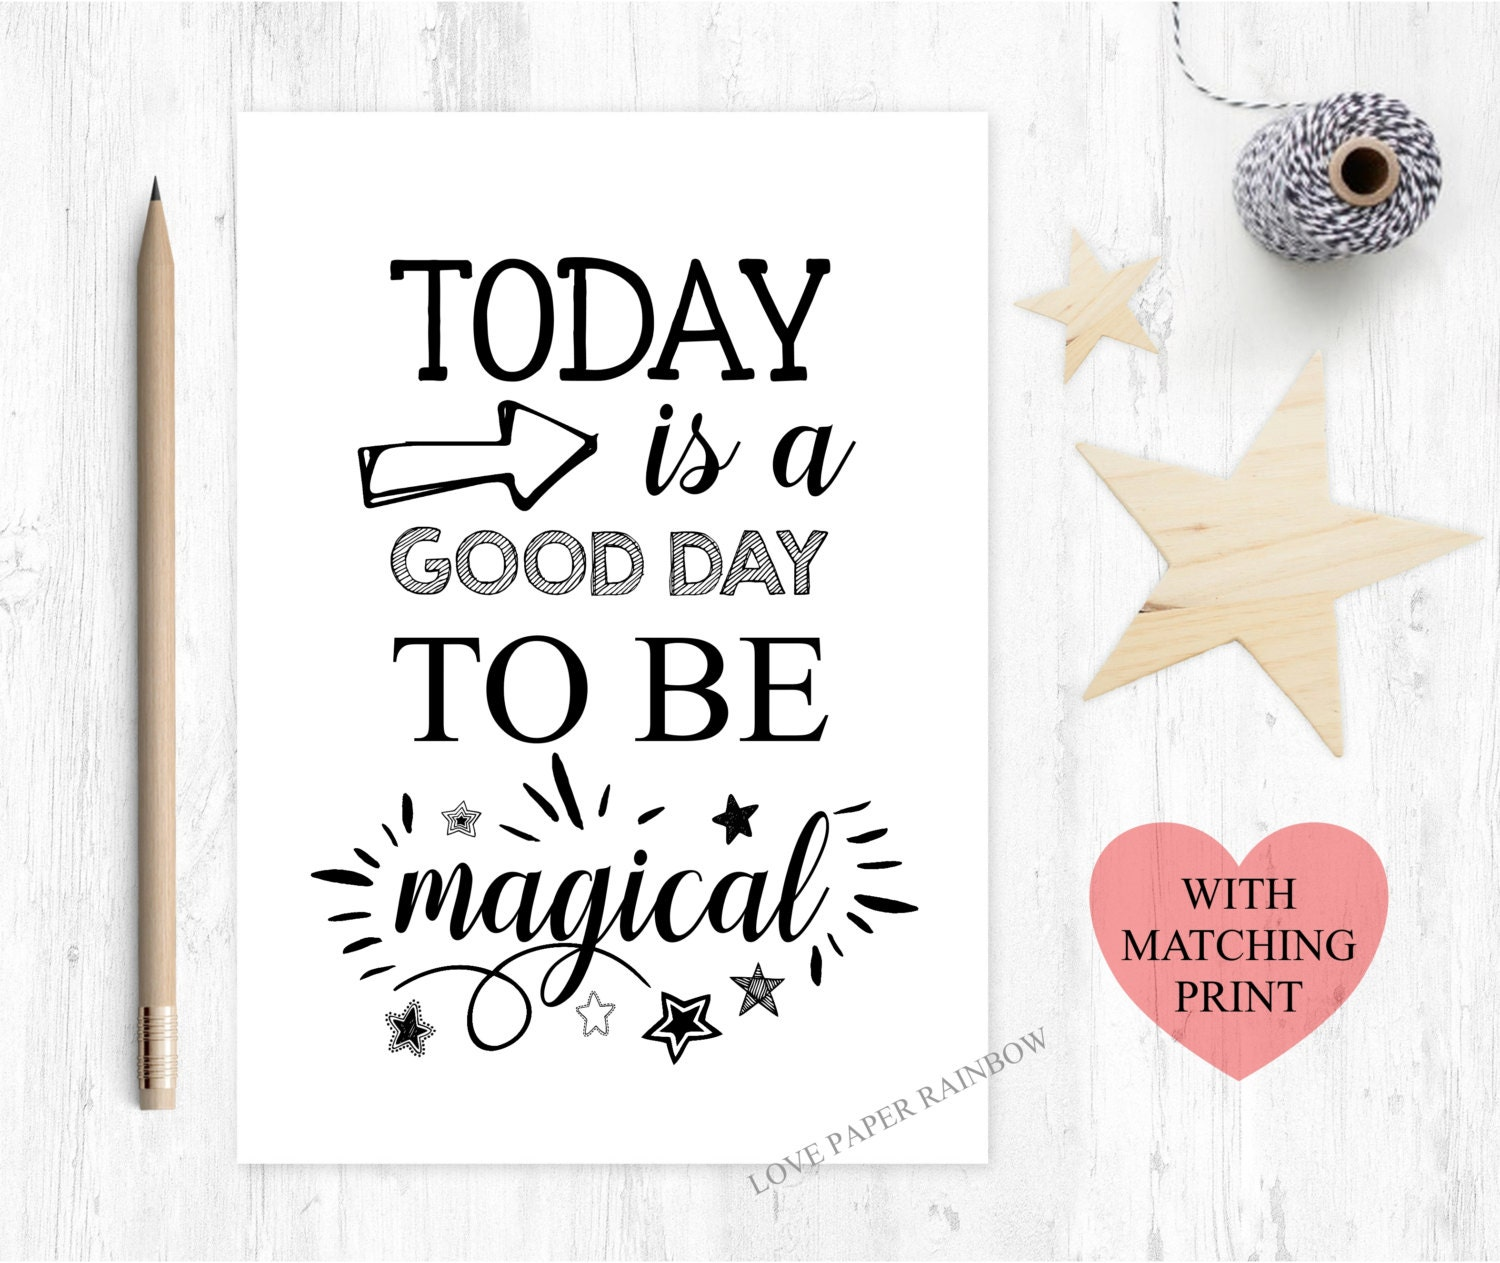 Today Is A Good Day To Be Magical Magical Card Motivational Il Fullxfull  Today Is A Good Day To Be Magical Good Luck Cards To Print Good Luck Cards  To Print  Good Luck Cards To Print